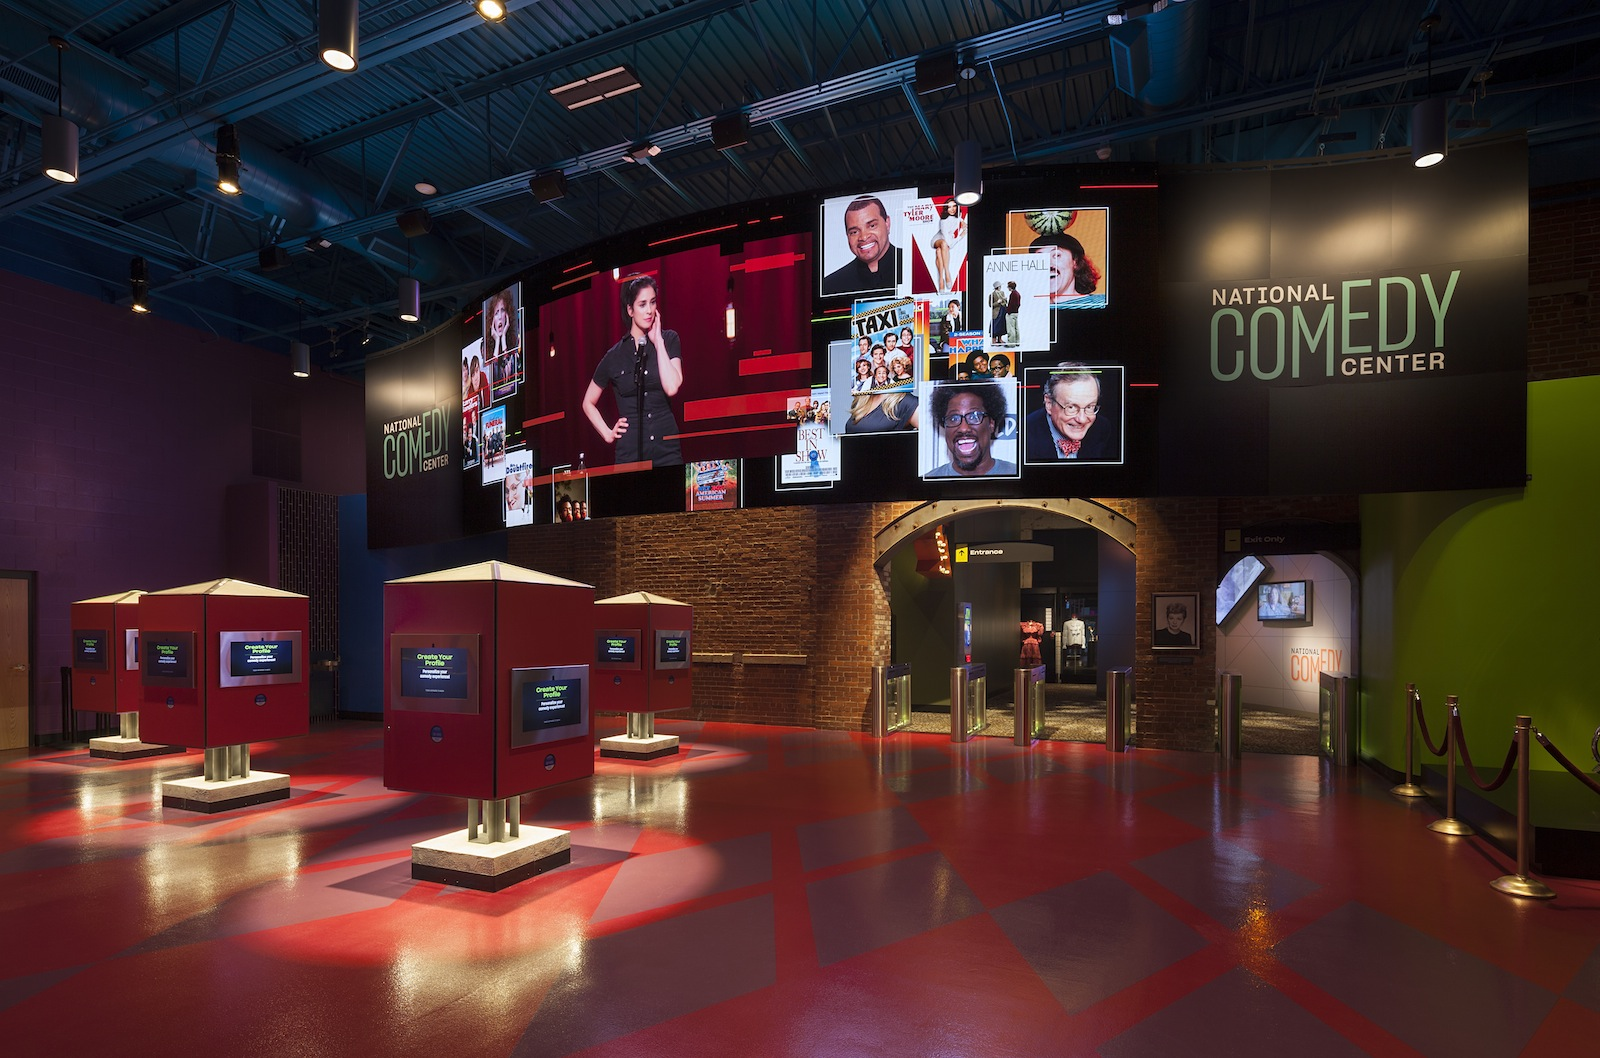 Marketing Exhibition Stand Up Comedy : National comedy center the best new museum in the usa? blooloop